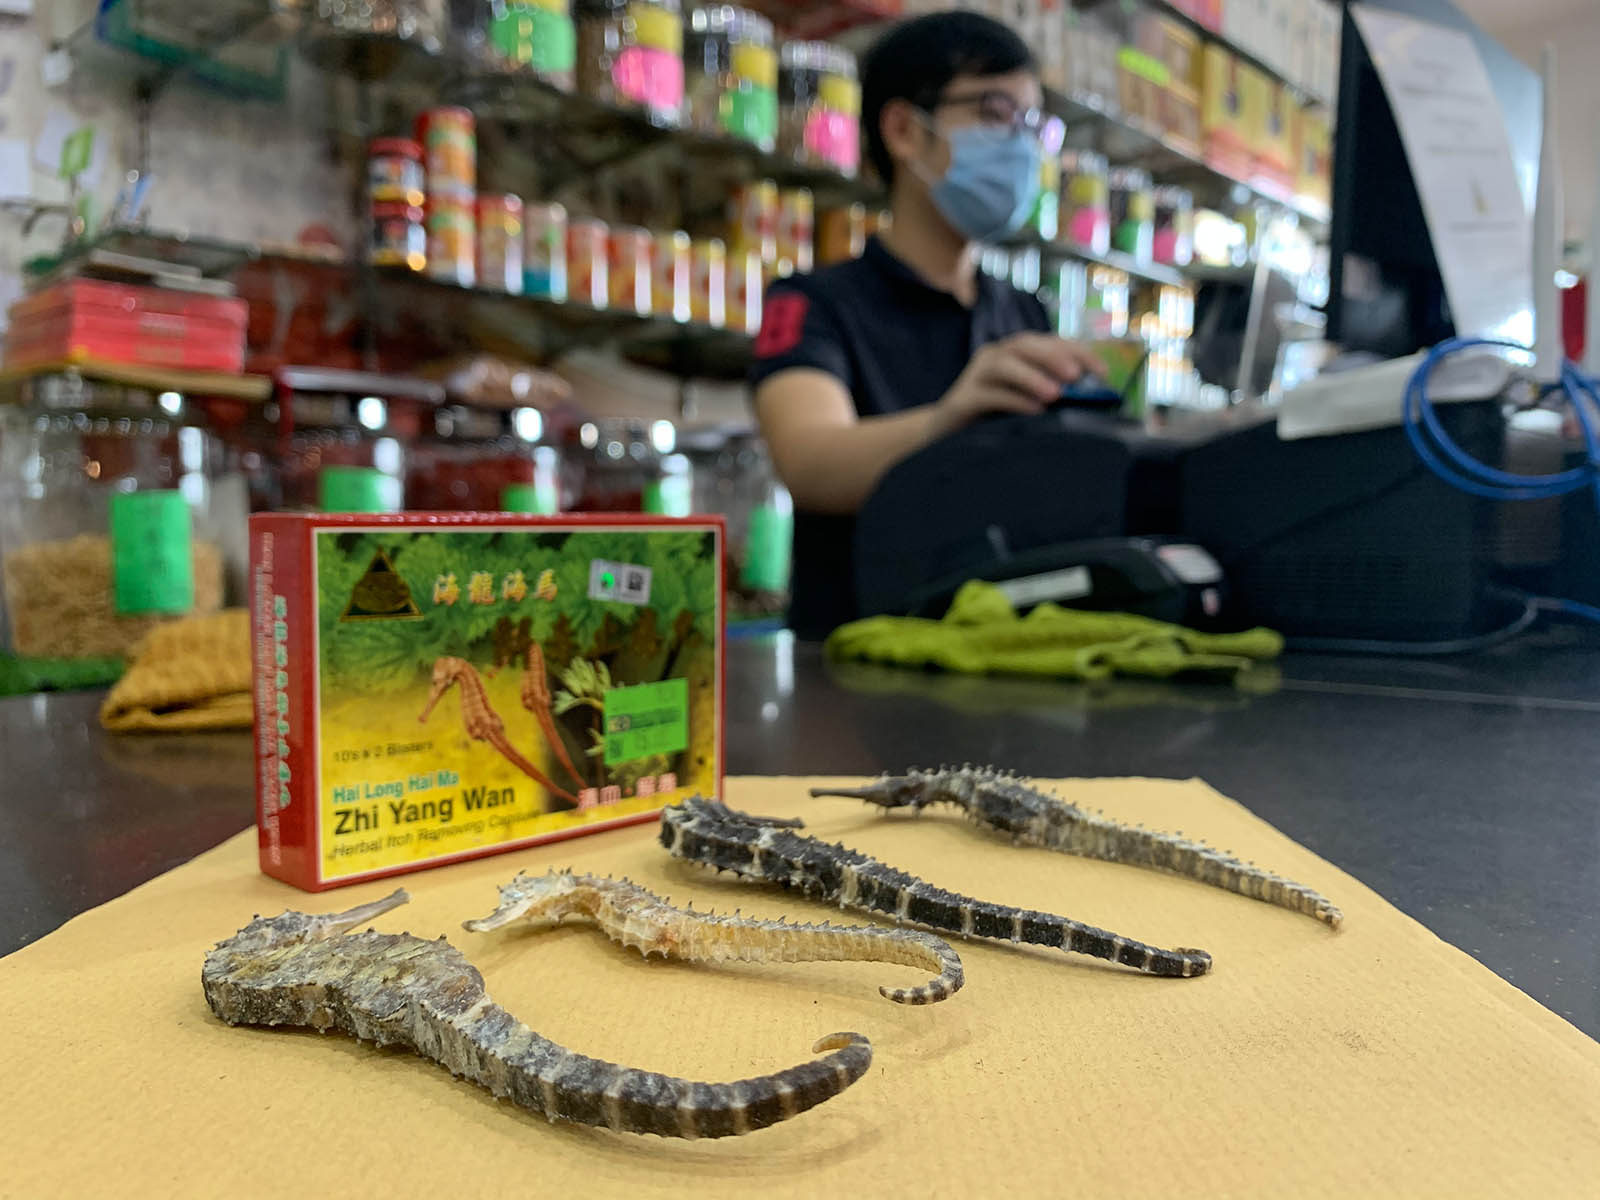 Working with rather than against seahorse users is more effective, says Ng. (Reana Ng)